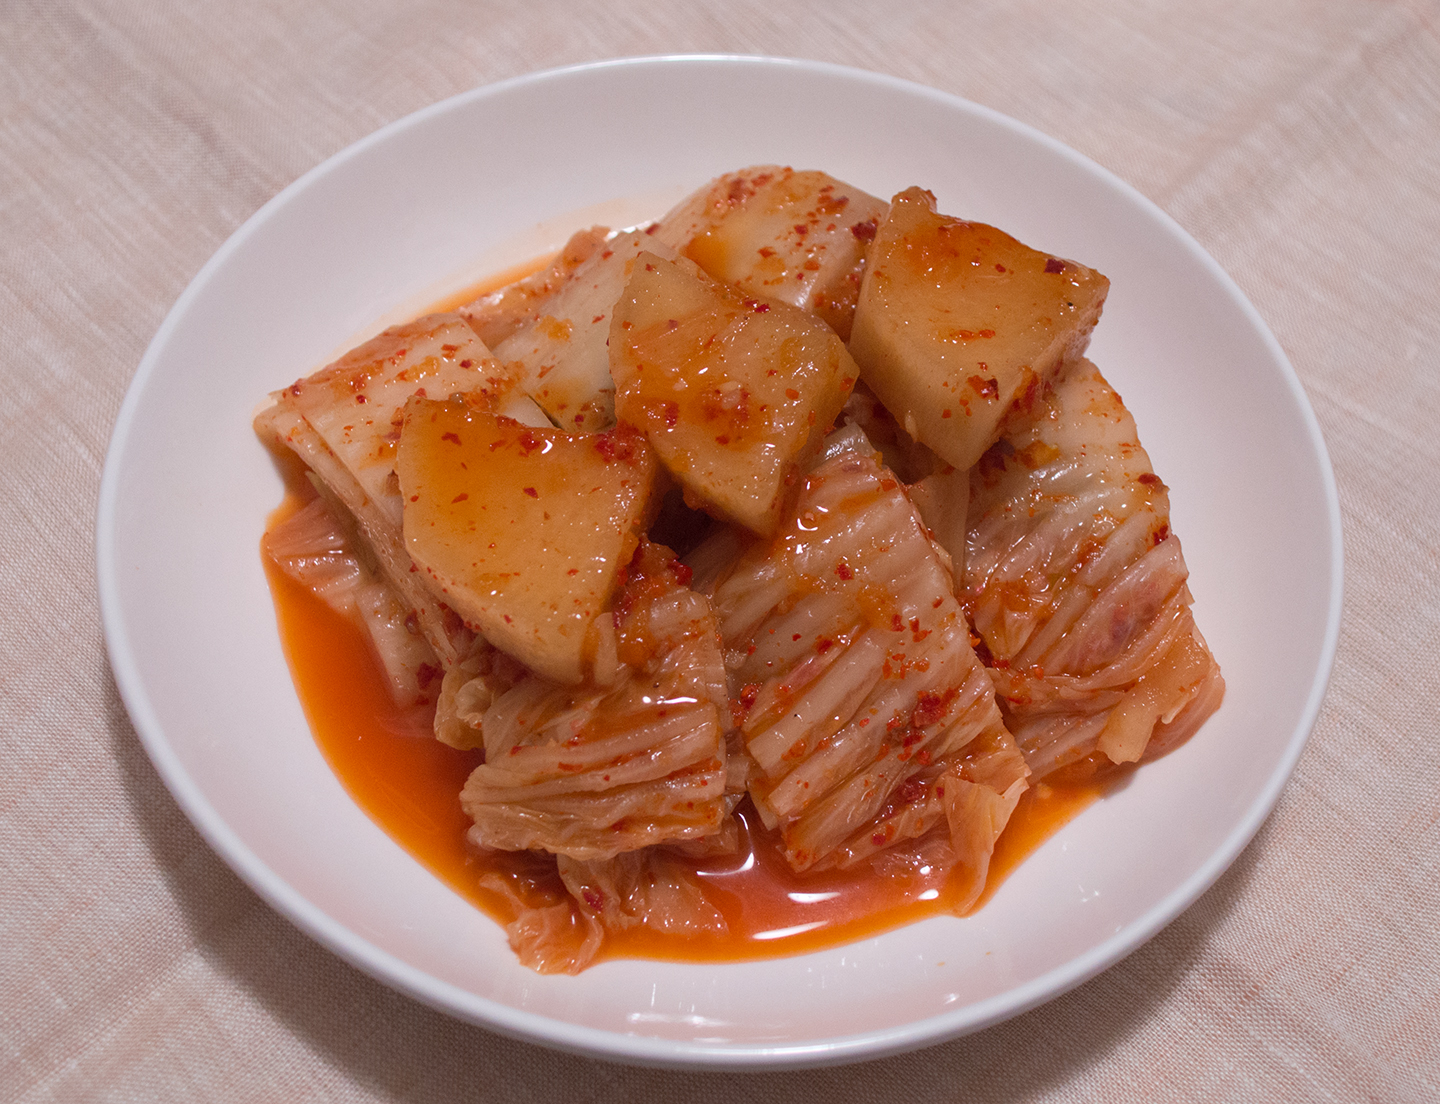 Pogi Kimchi (포기 김치) - Traditional Whole Cabbage Kimchi